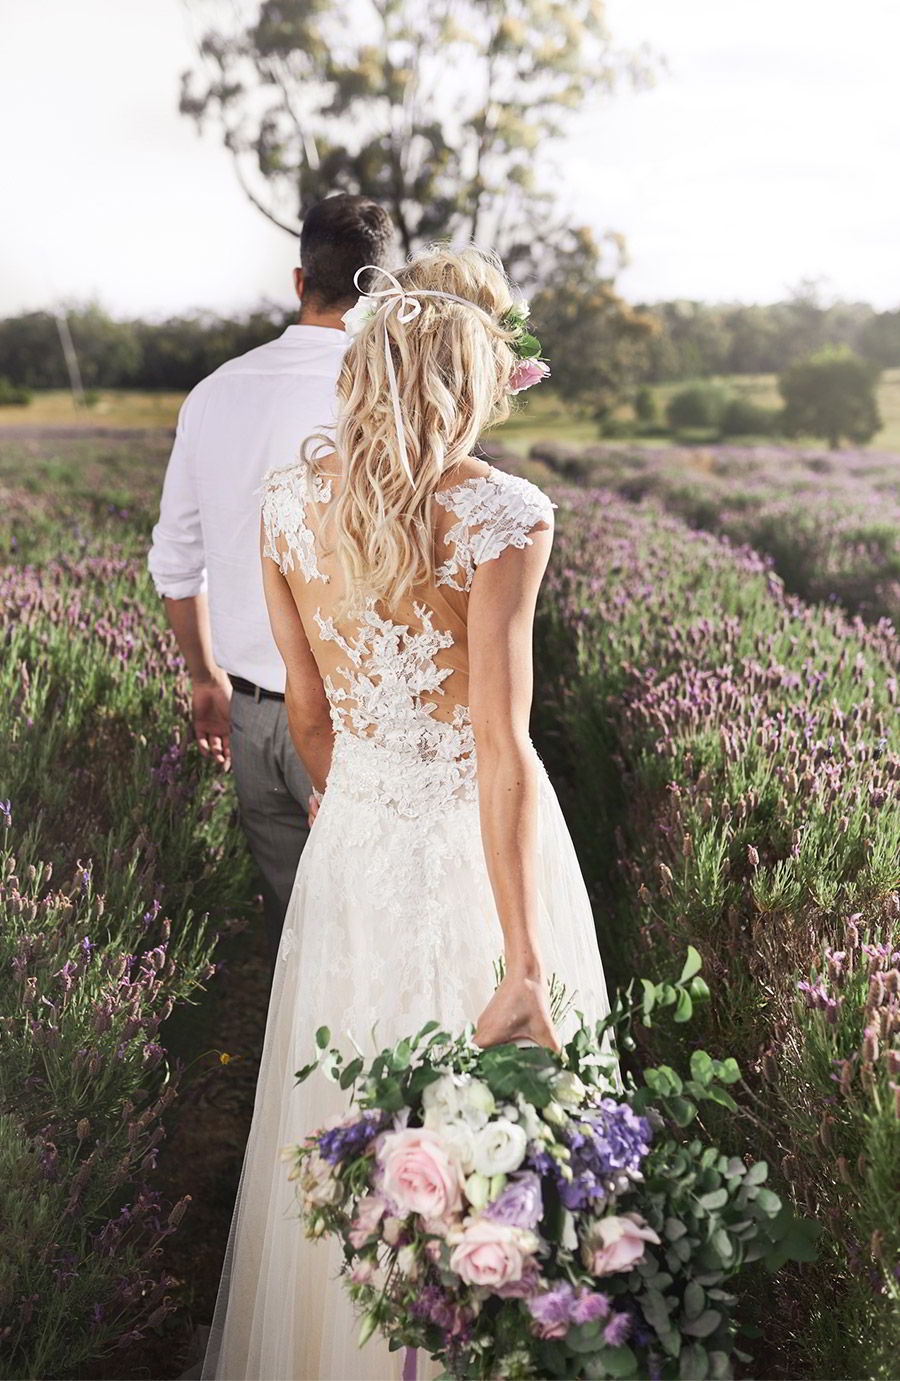 lavender field wedding photo shoot adorn invitations purple gold boho luxe inspiration romantic couple